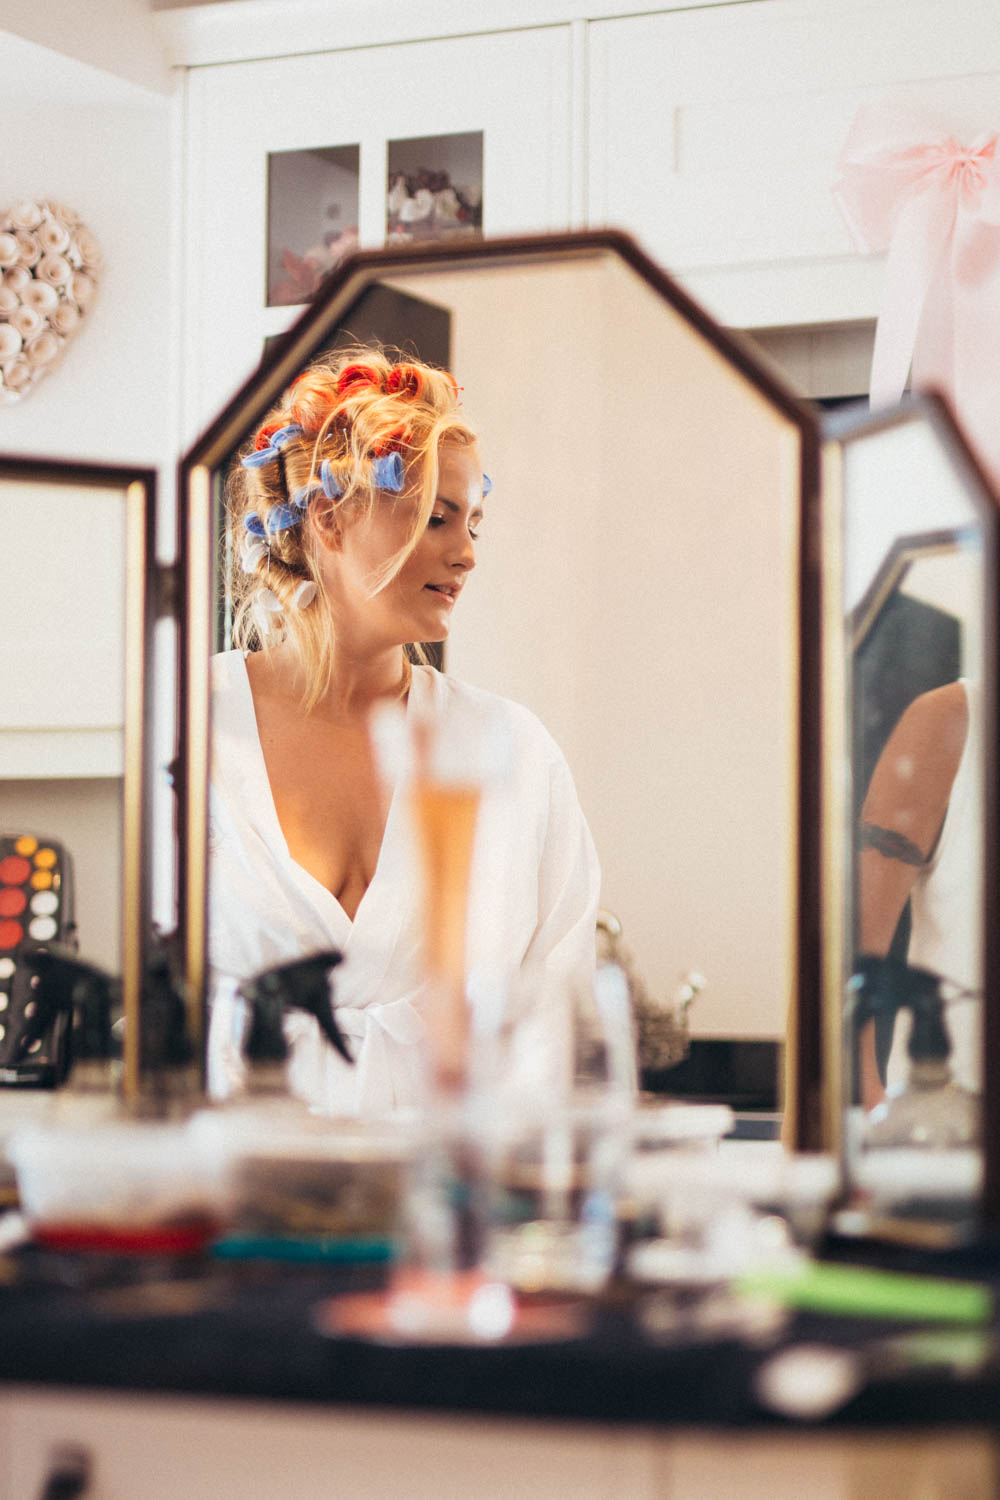 Special-Day-Photography-Manor-By-The-Lake-Cheltenham-Cheltenham-Manor-Wedding-makeup-preparations-in-the-mirror.jpg